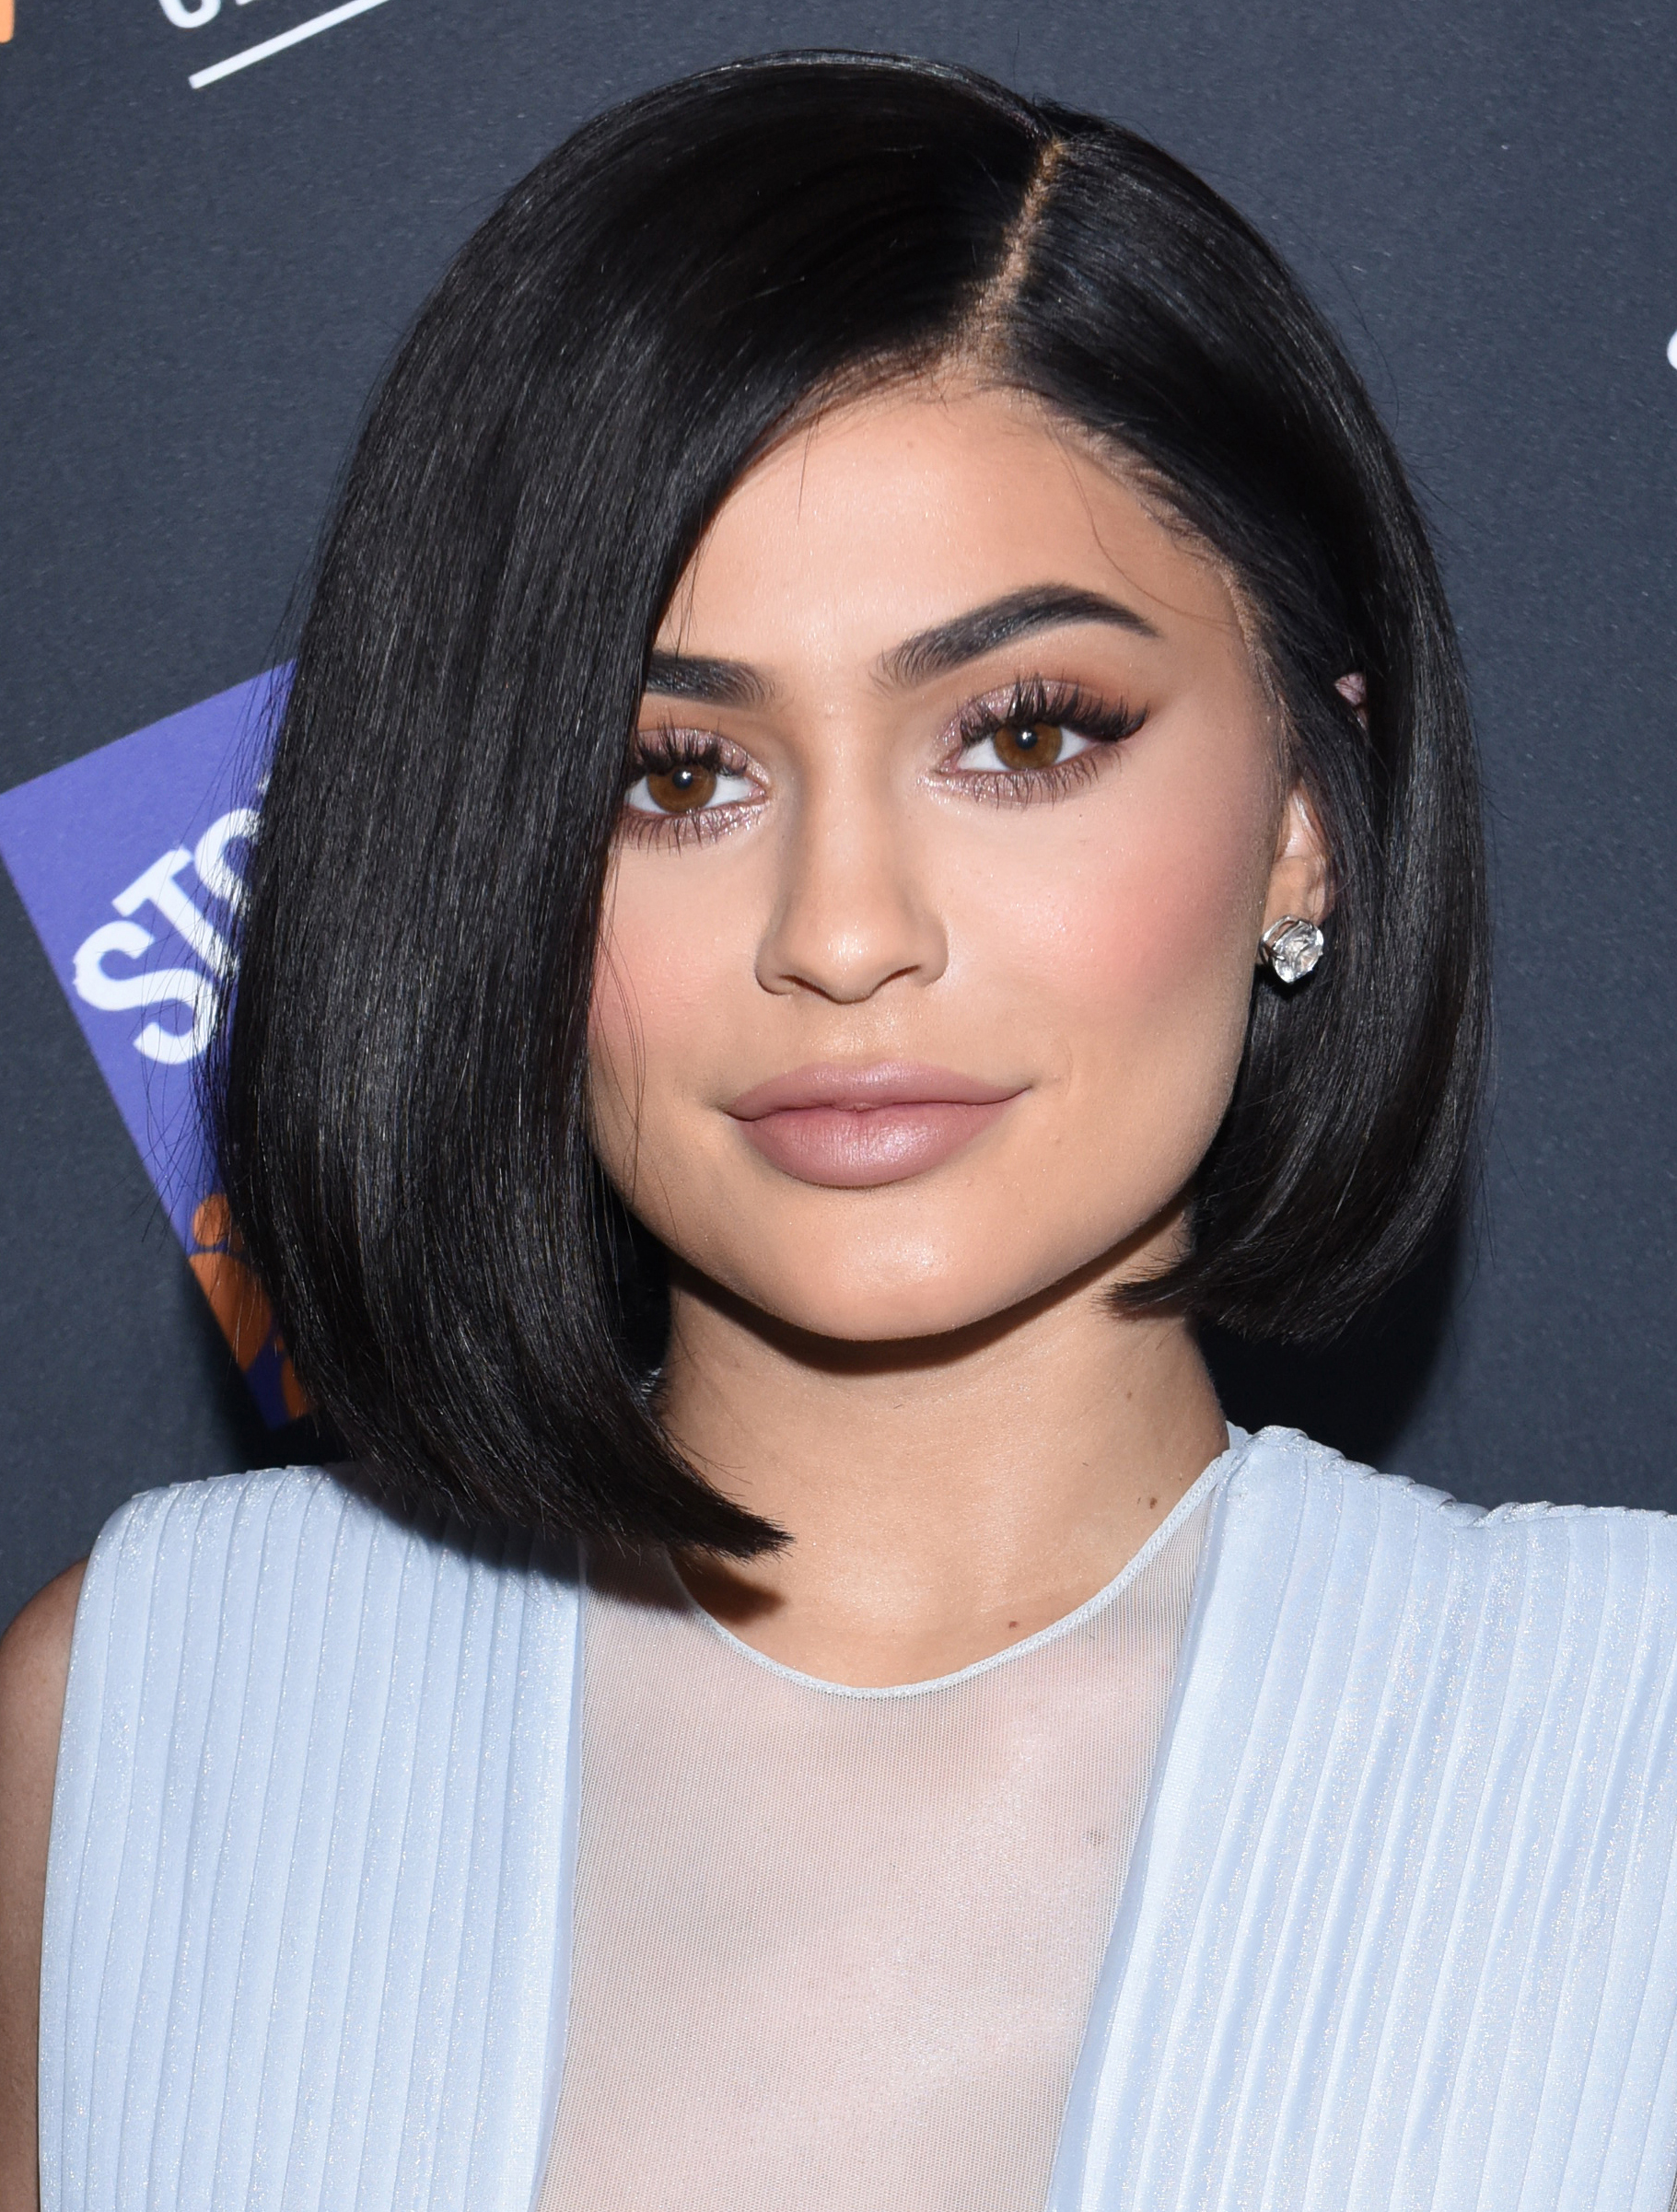 SinfulColors and Kylie Jenner Announce charitybuzz.com Auction for Anti Bullying